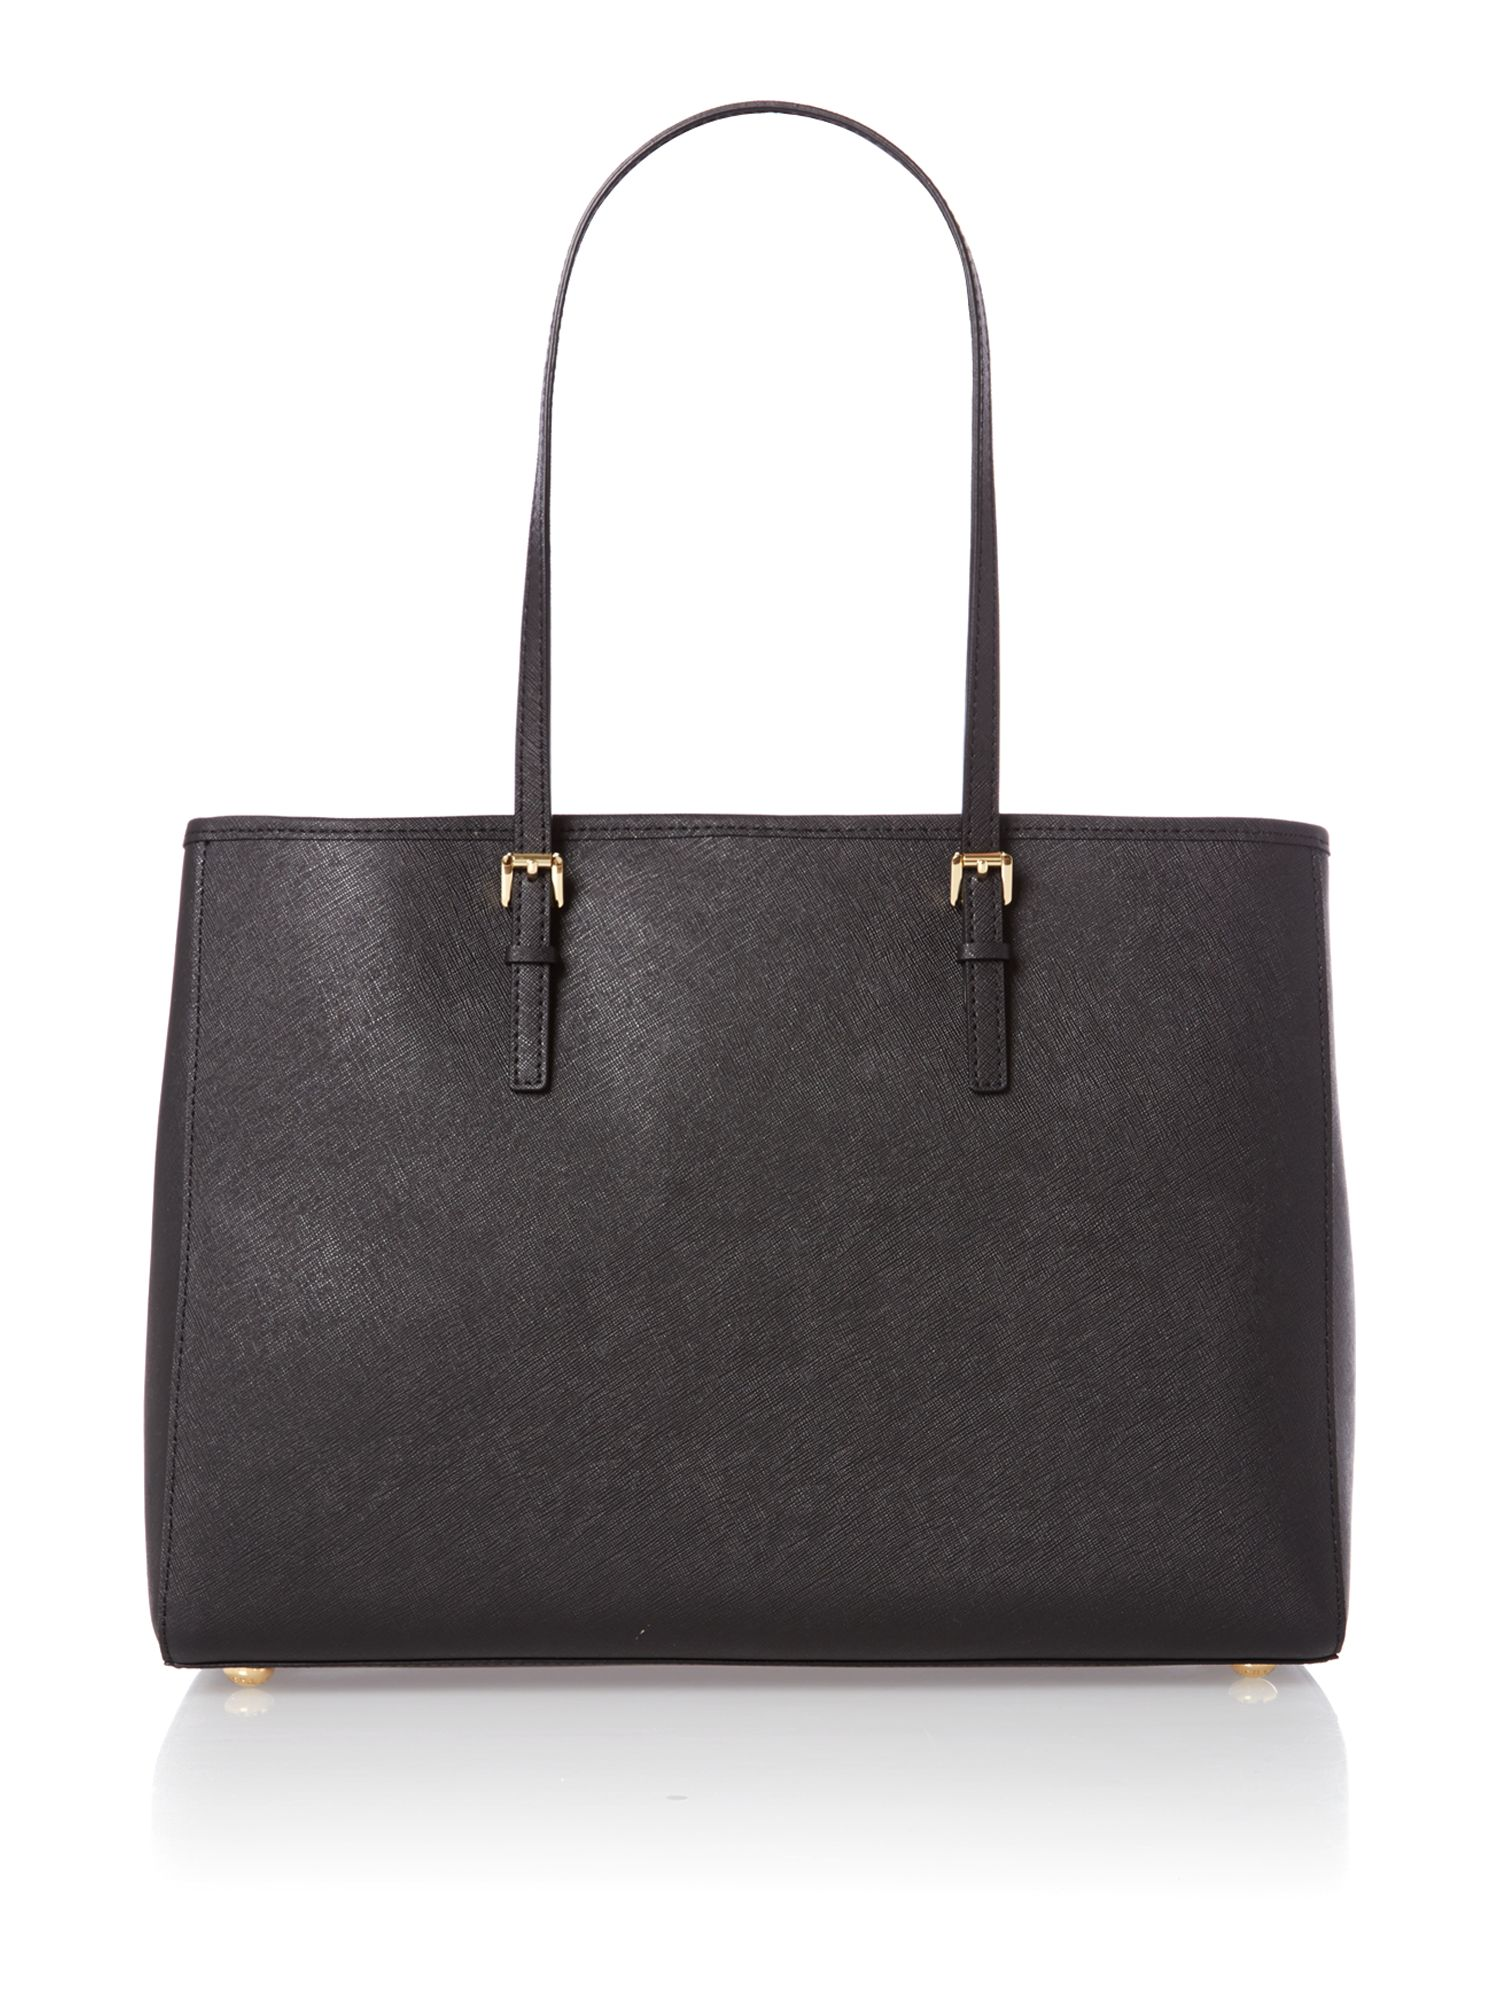 Jet set travel medium black tote bag